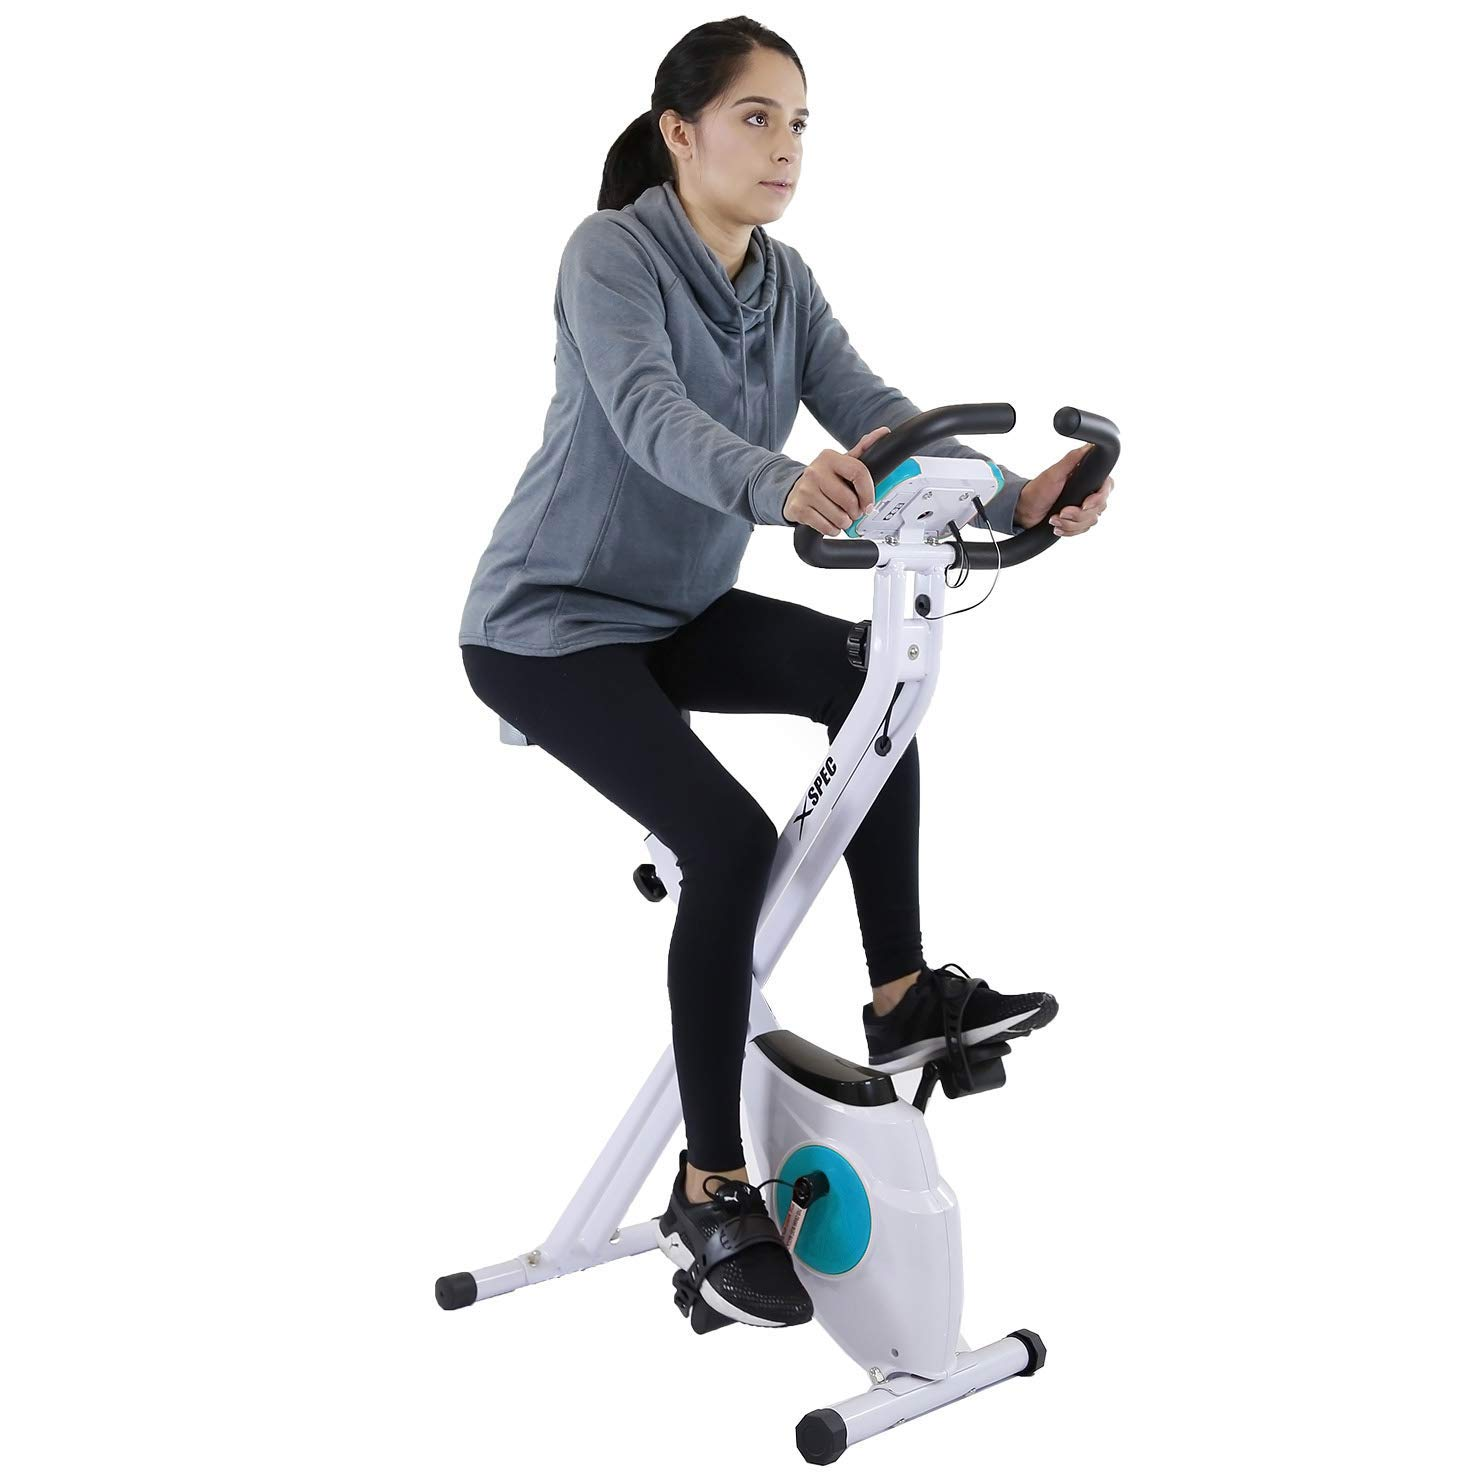 Xspec Indoor Foldable Stationary Upright Cardio Workout Exercise Cycling Bike w Heart Rate 8-Level Magnetic Resistance LCD Monitor w Phone Tablet Holder